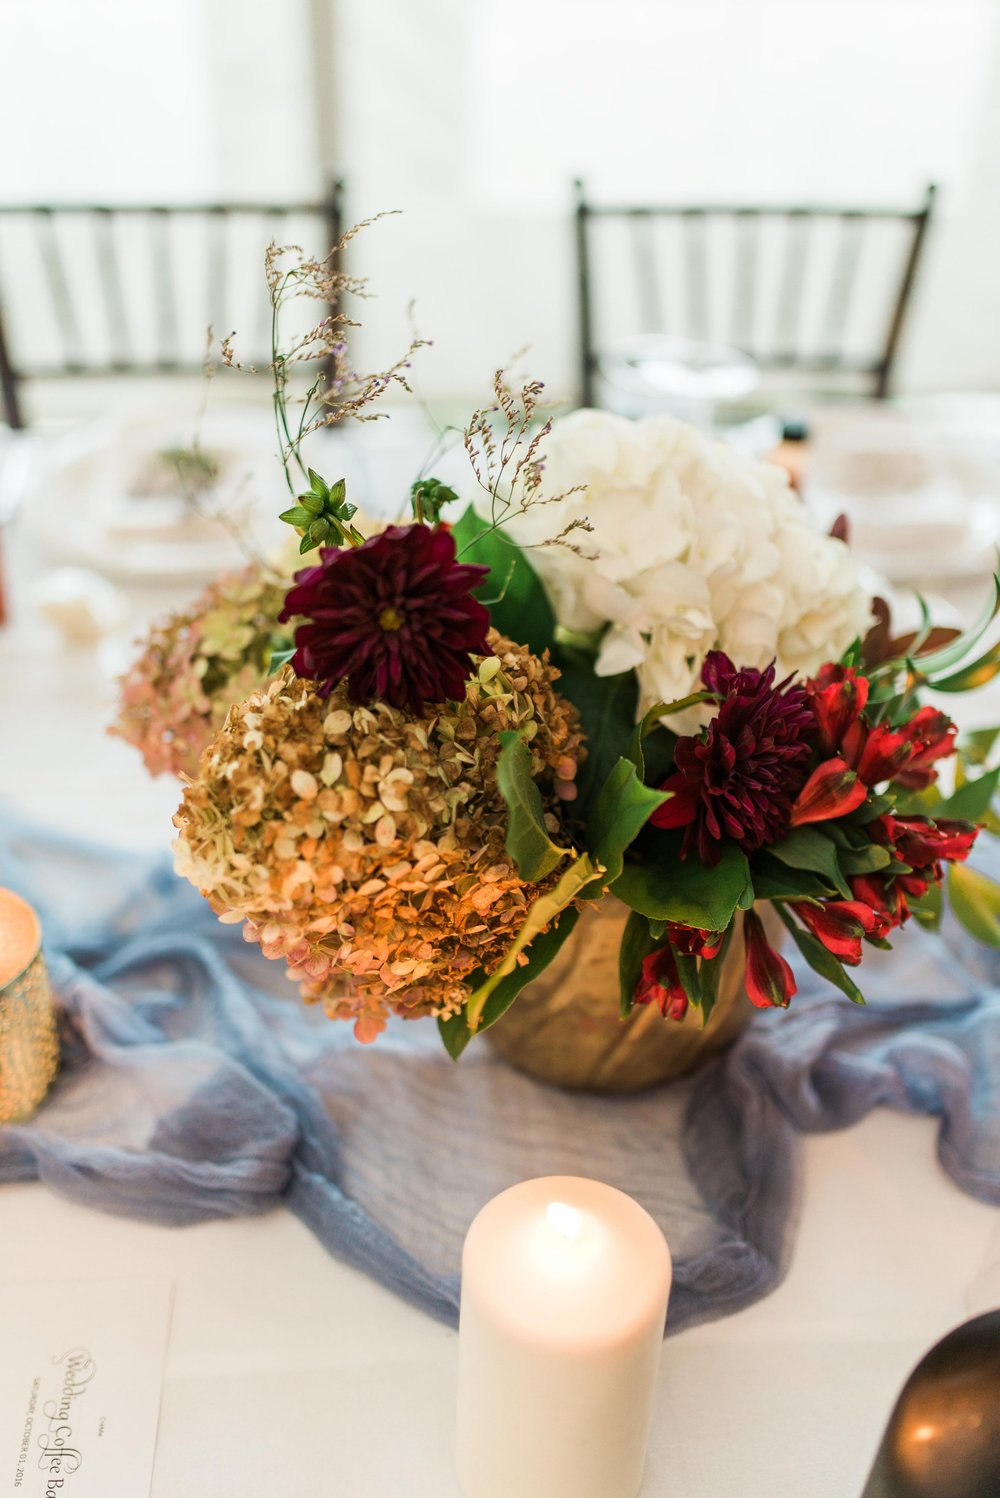 Antique Hydrangea Centrepiece - Wedding Florists in Winnipeg